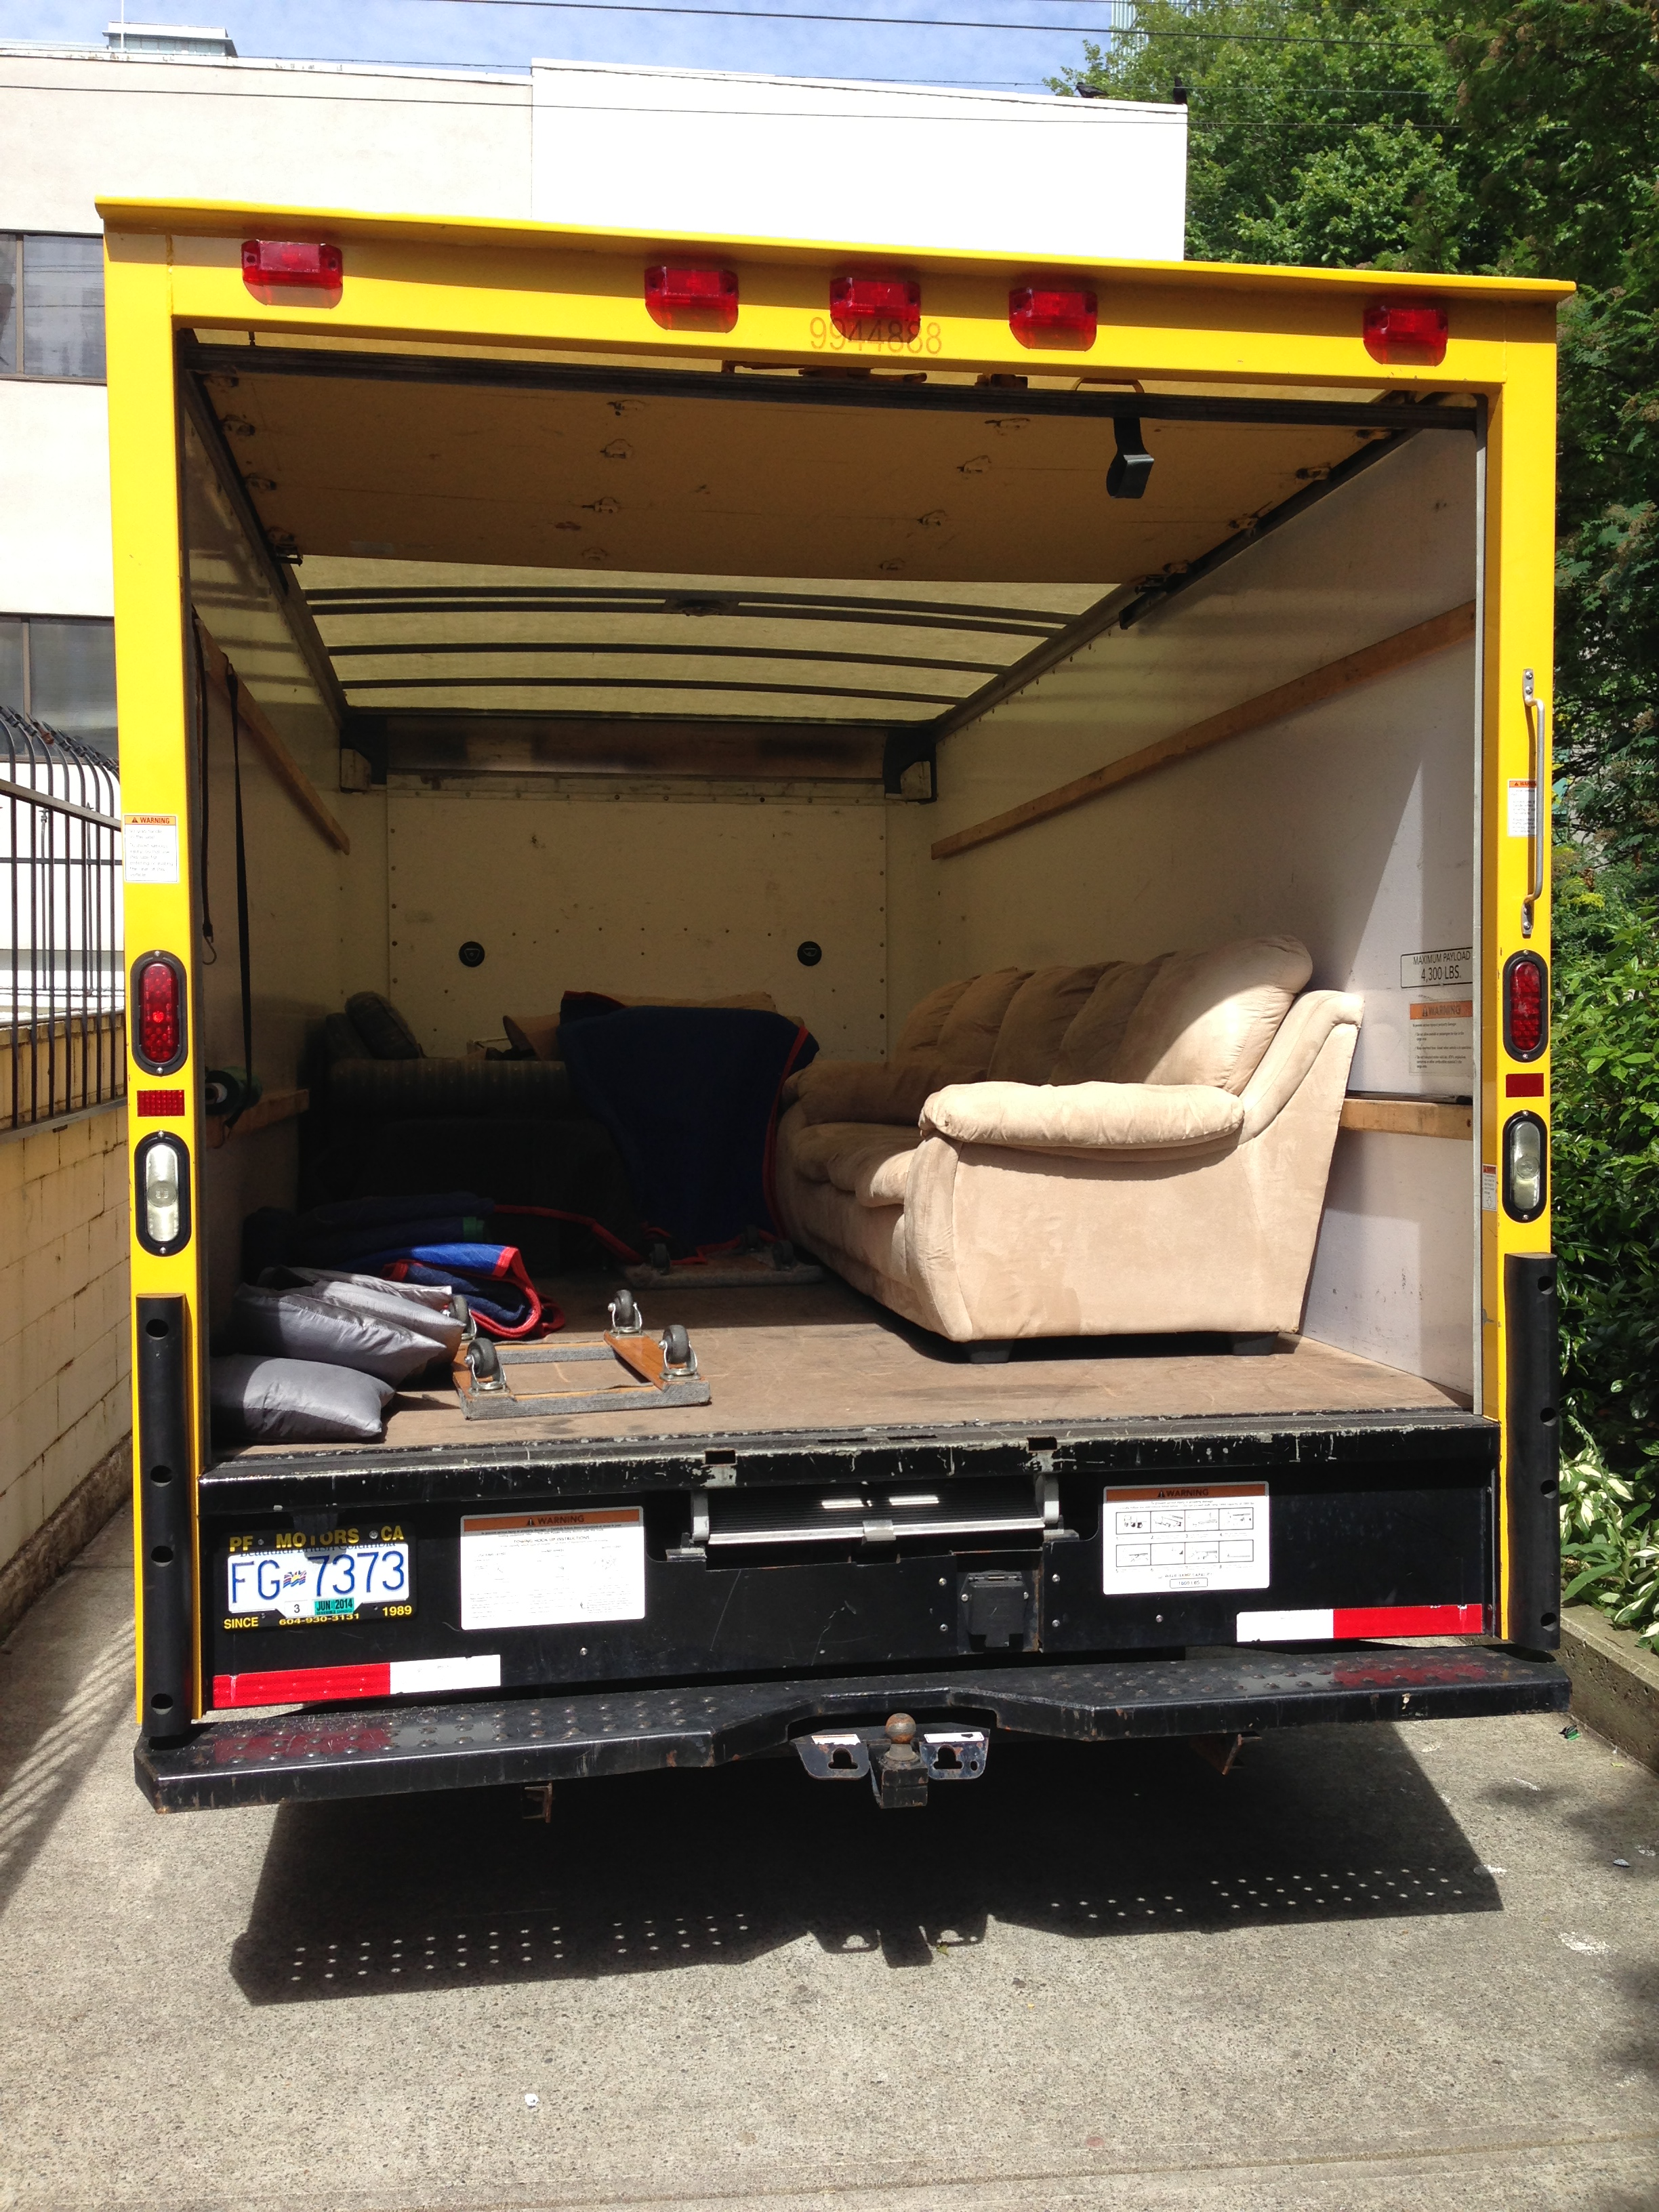 Furniture delivery furniture removals furniture for Furniture delivery